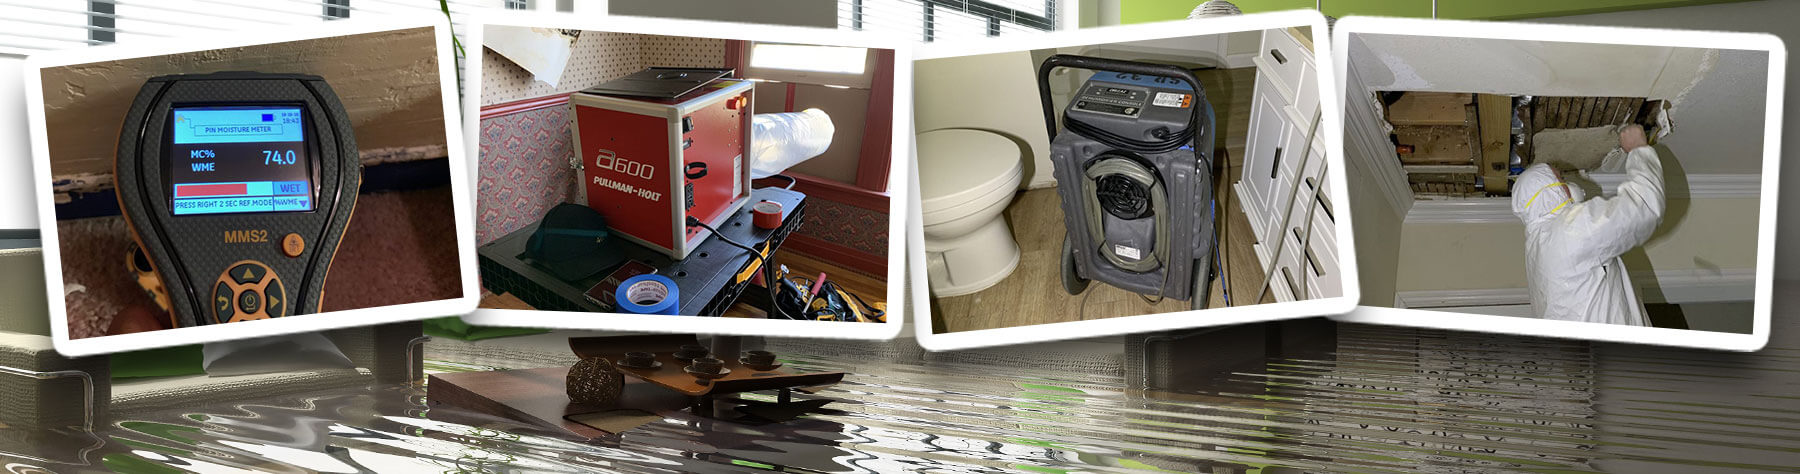 water damage services Riverside, California